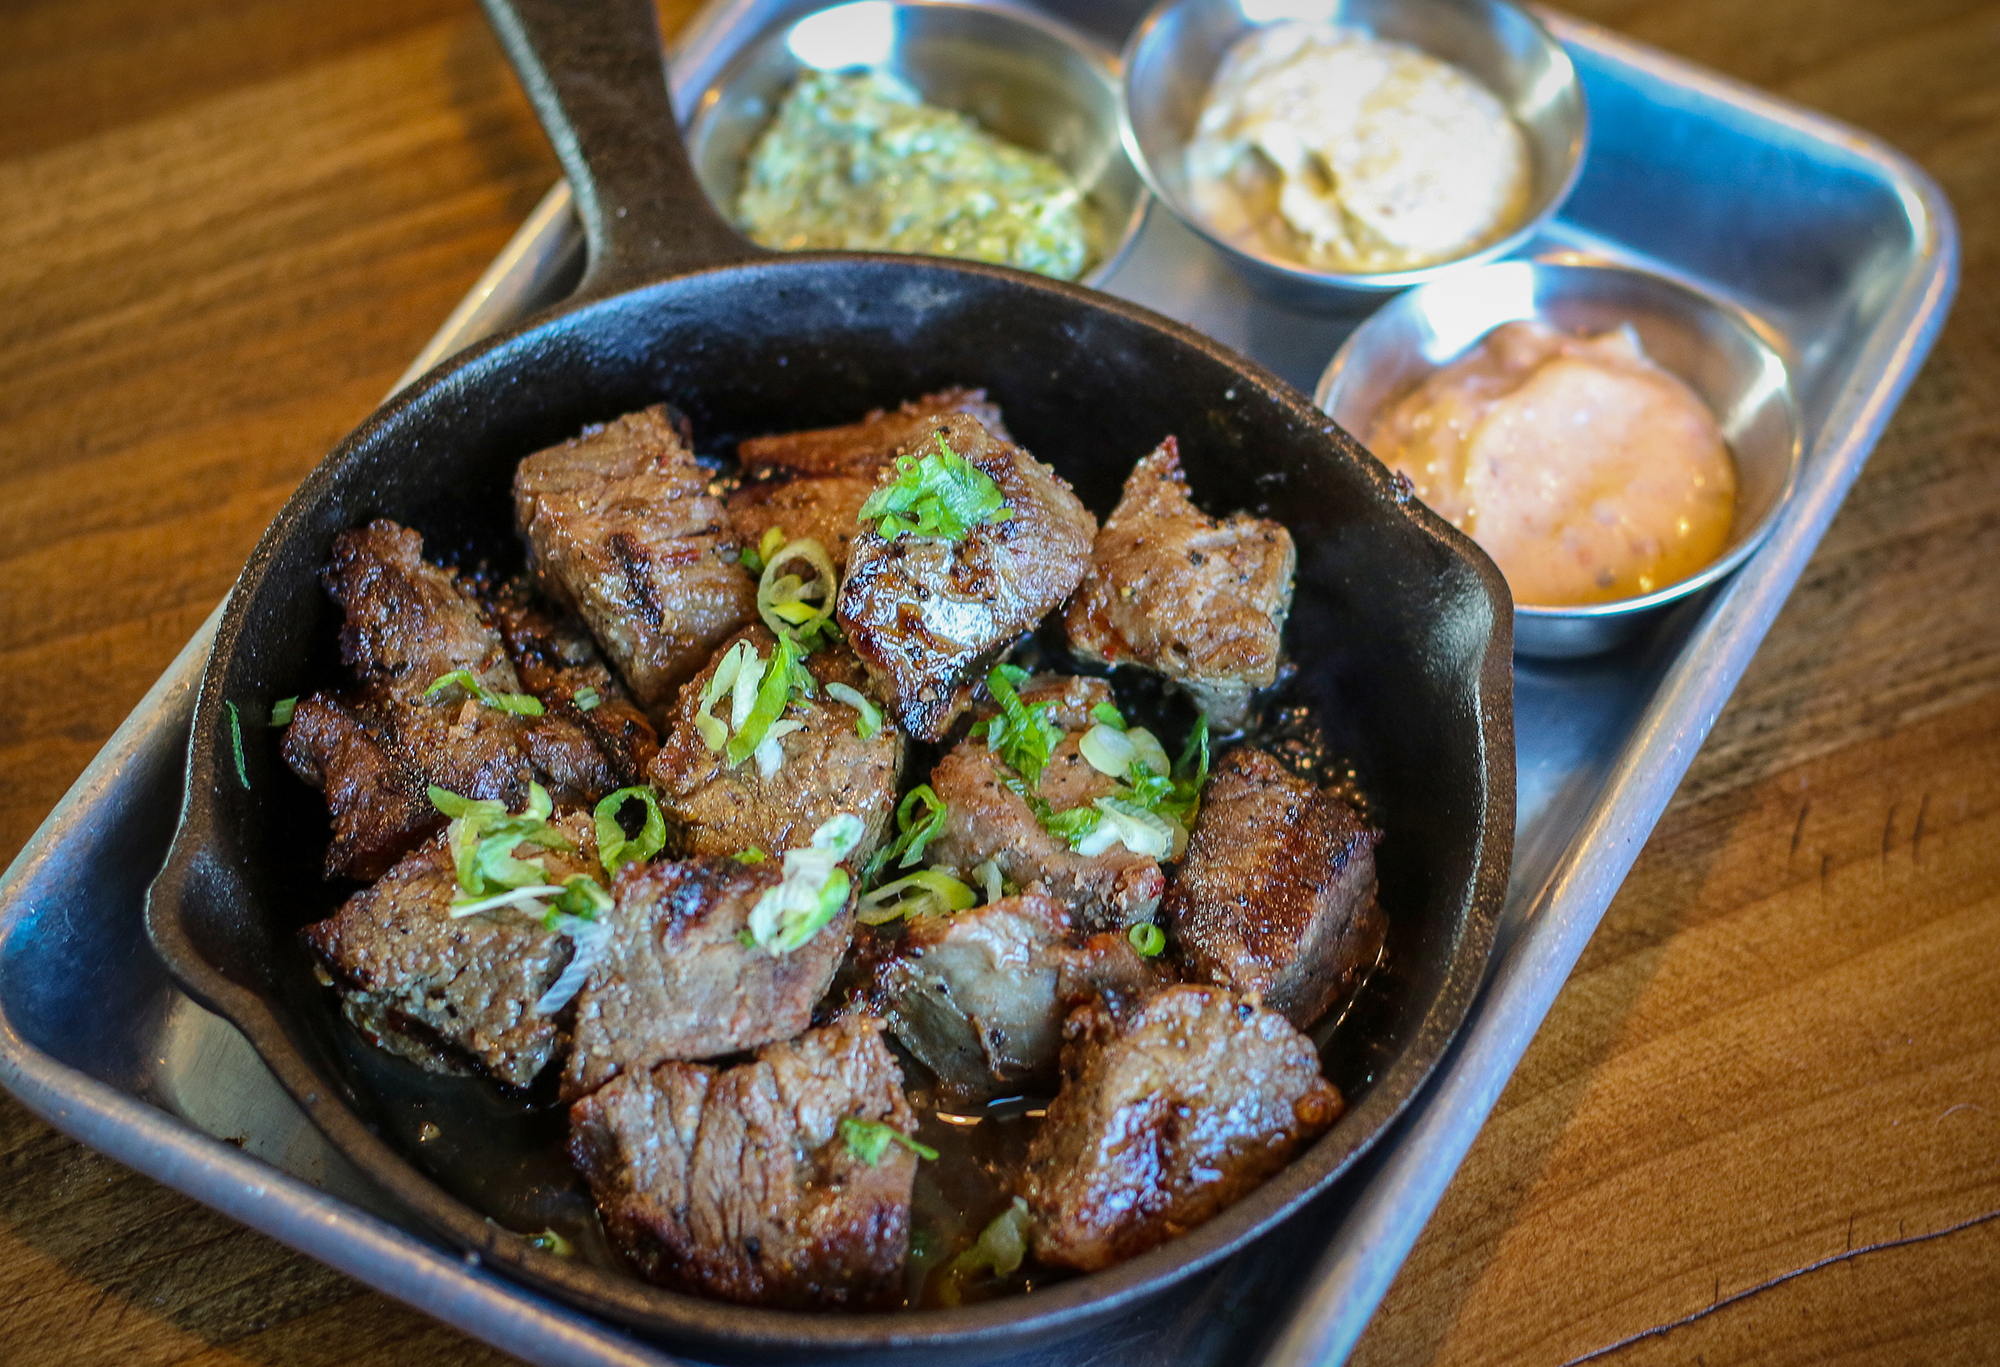 Tri-Tip Bites with chpotle, creamy horseradish and garlic aioli at Tips Roadside in Kenwood. Heather Irwin/PD